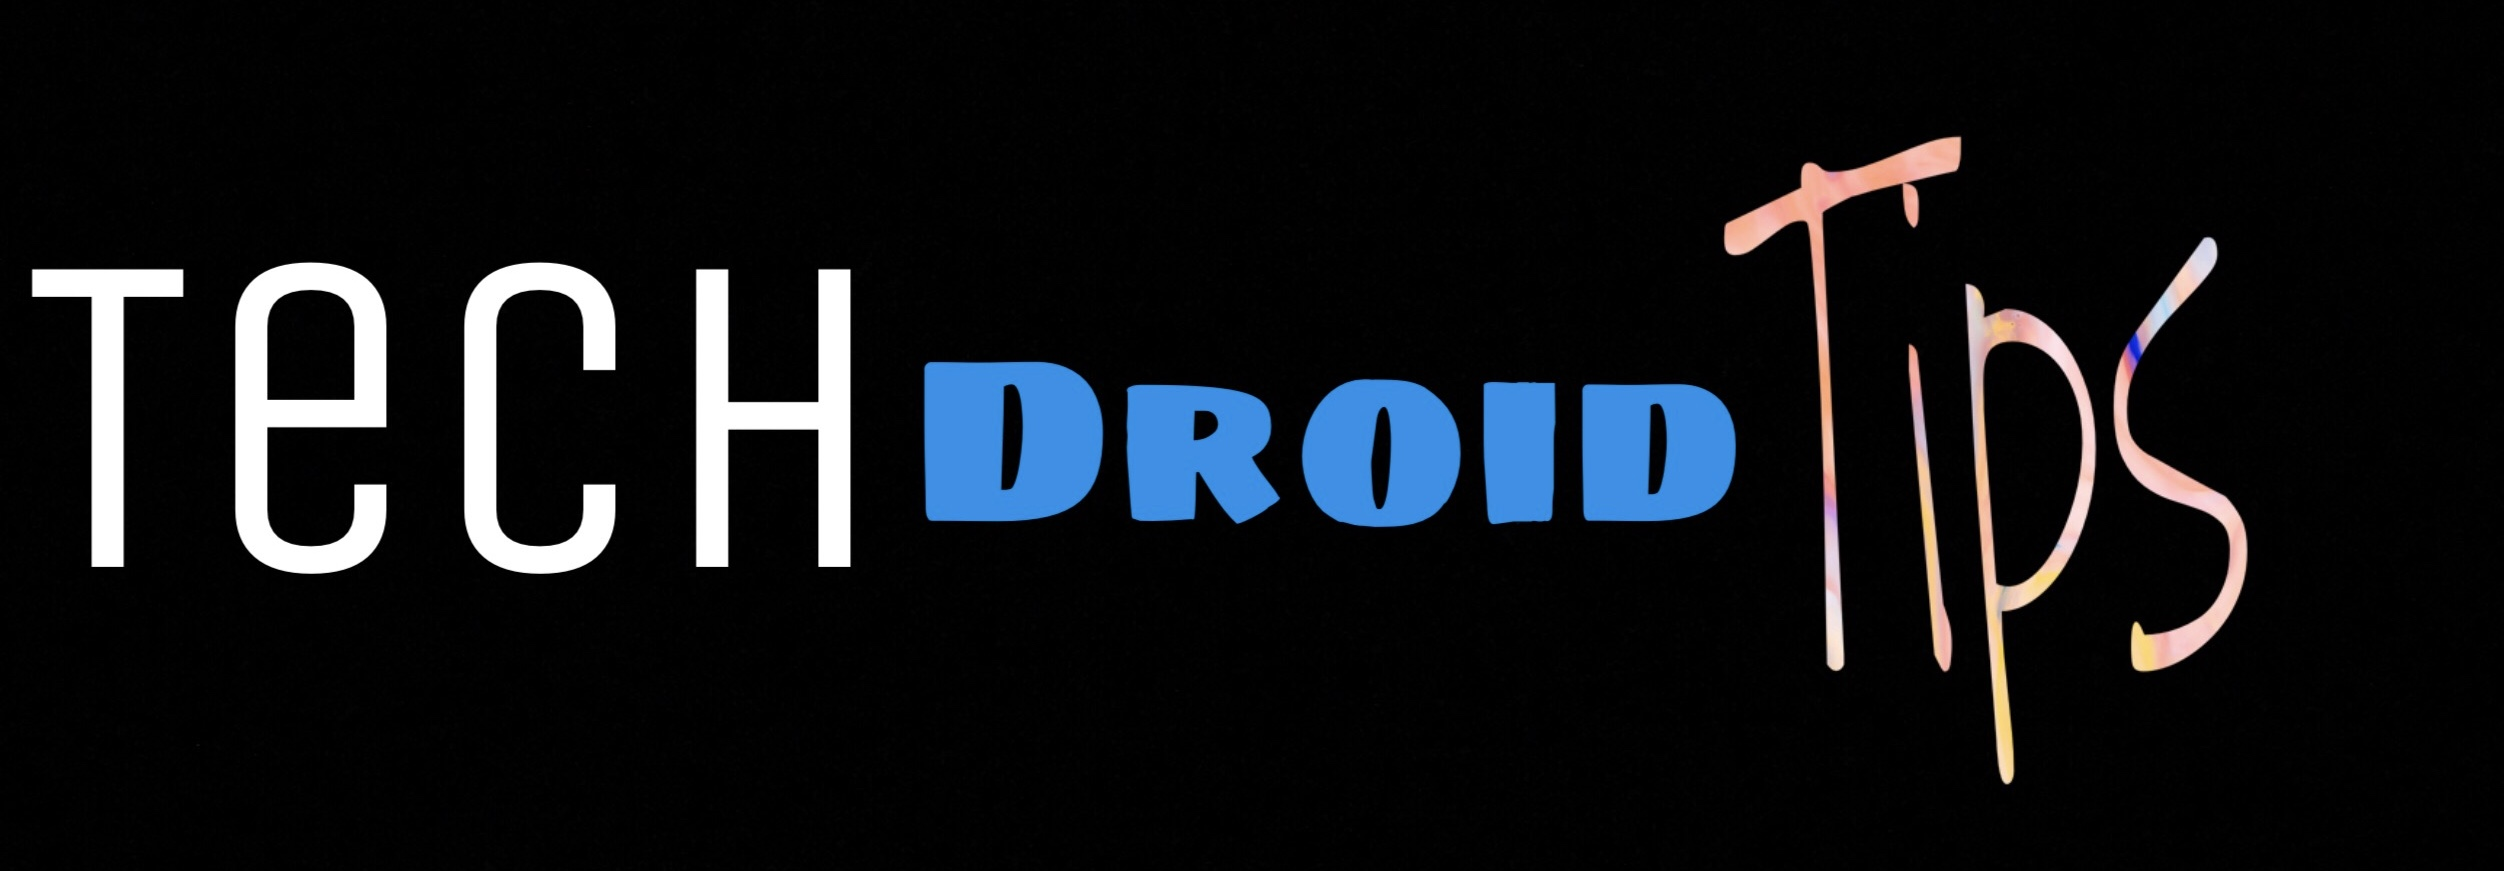 Tech Droid Tips